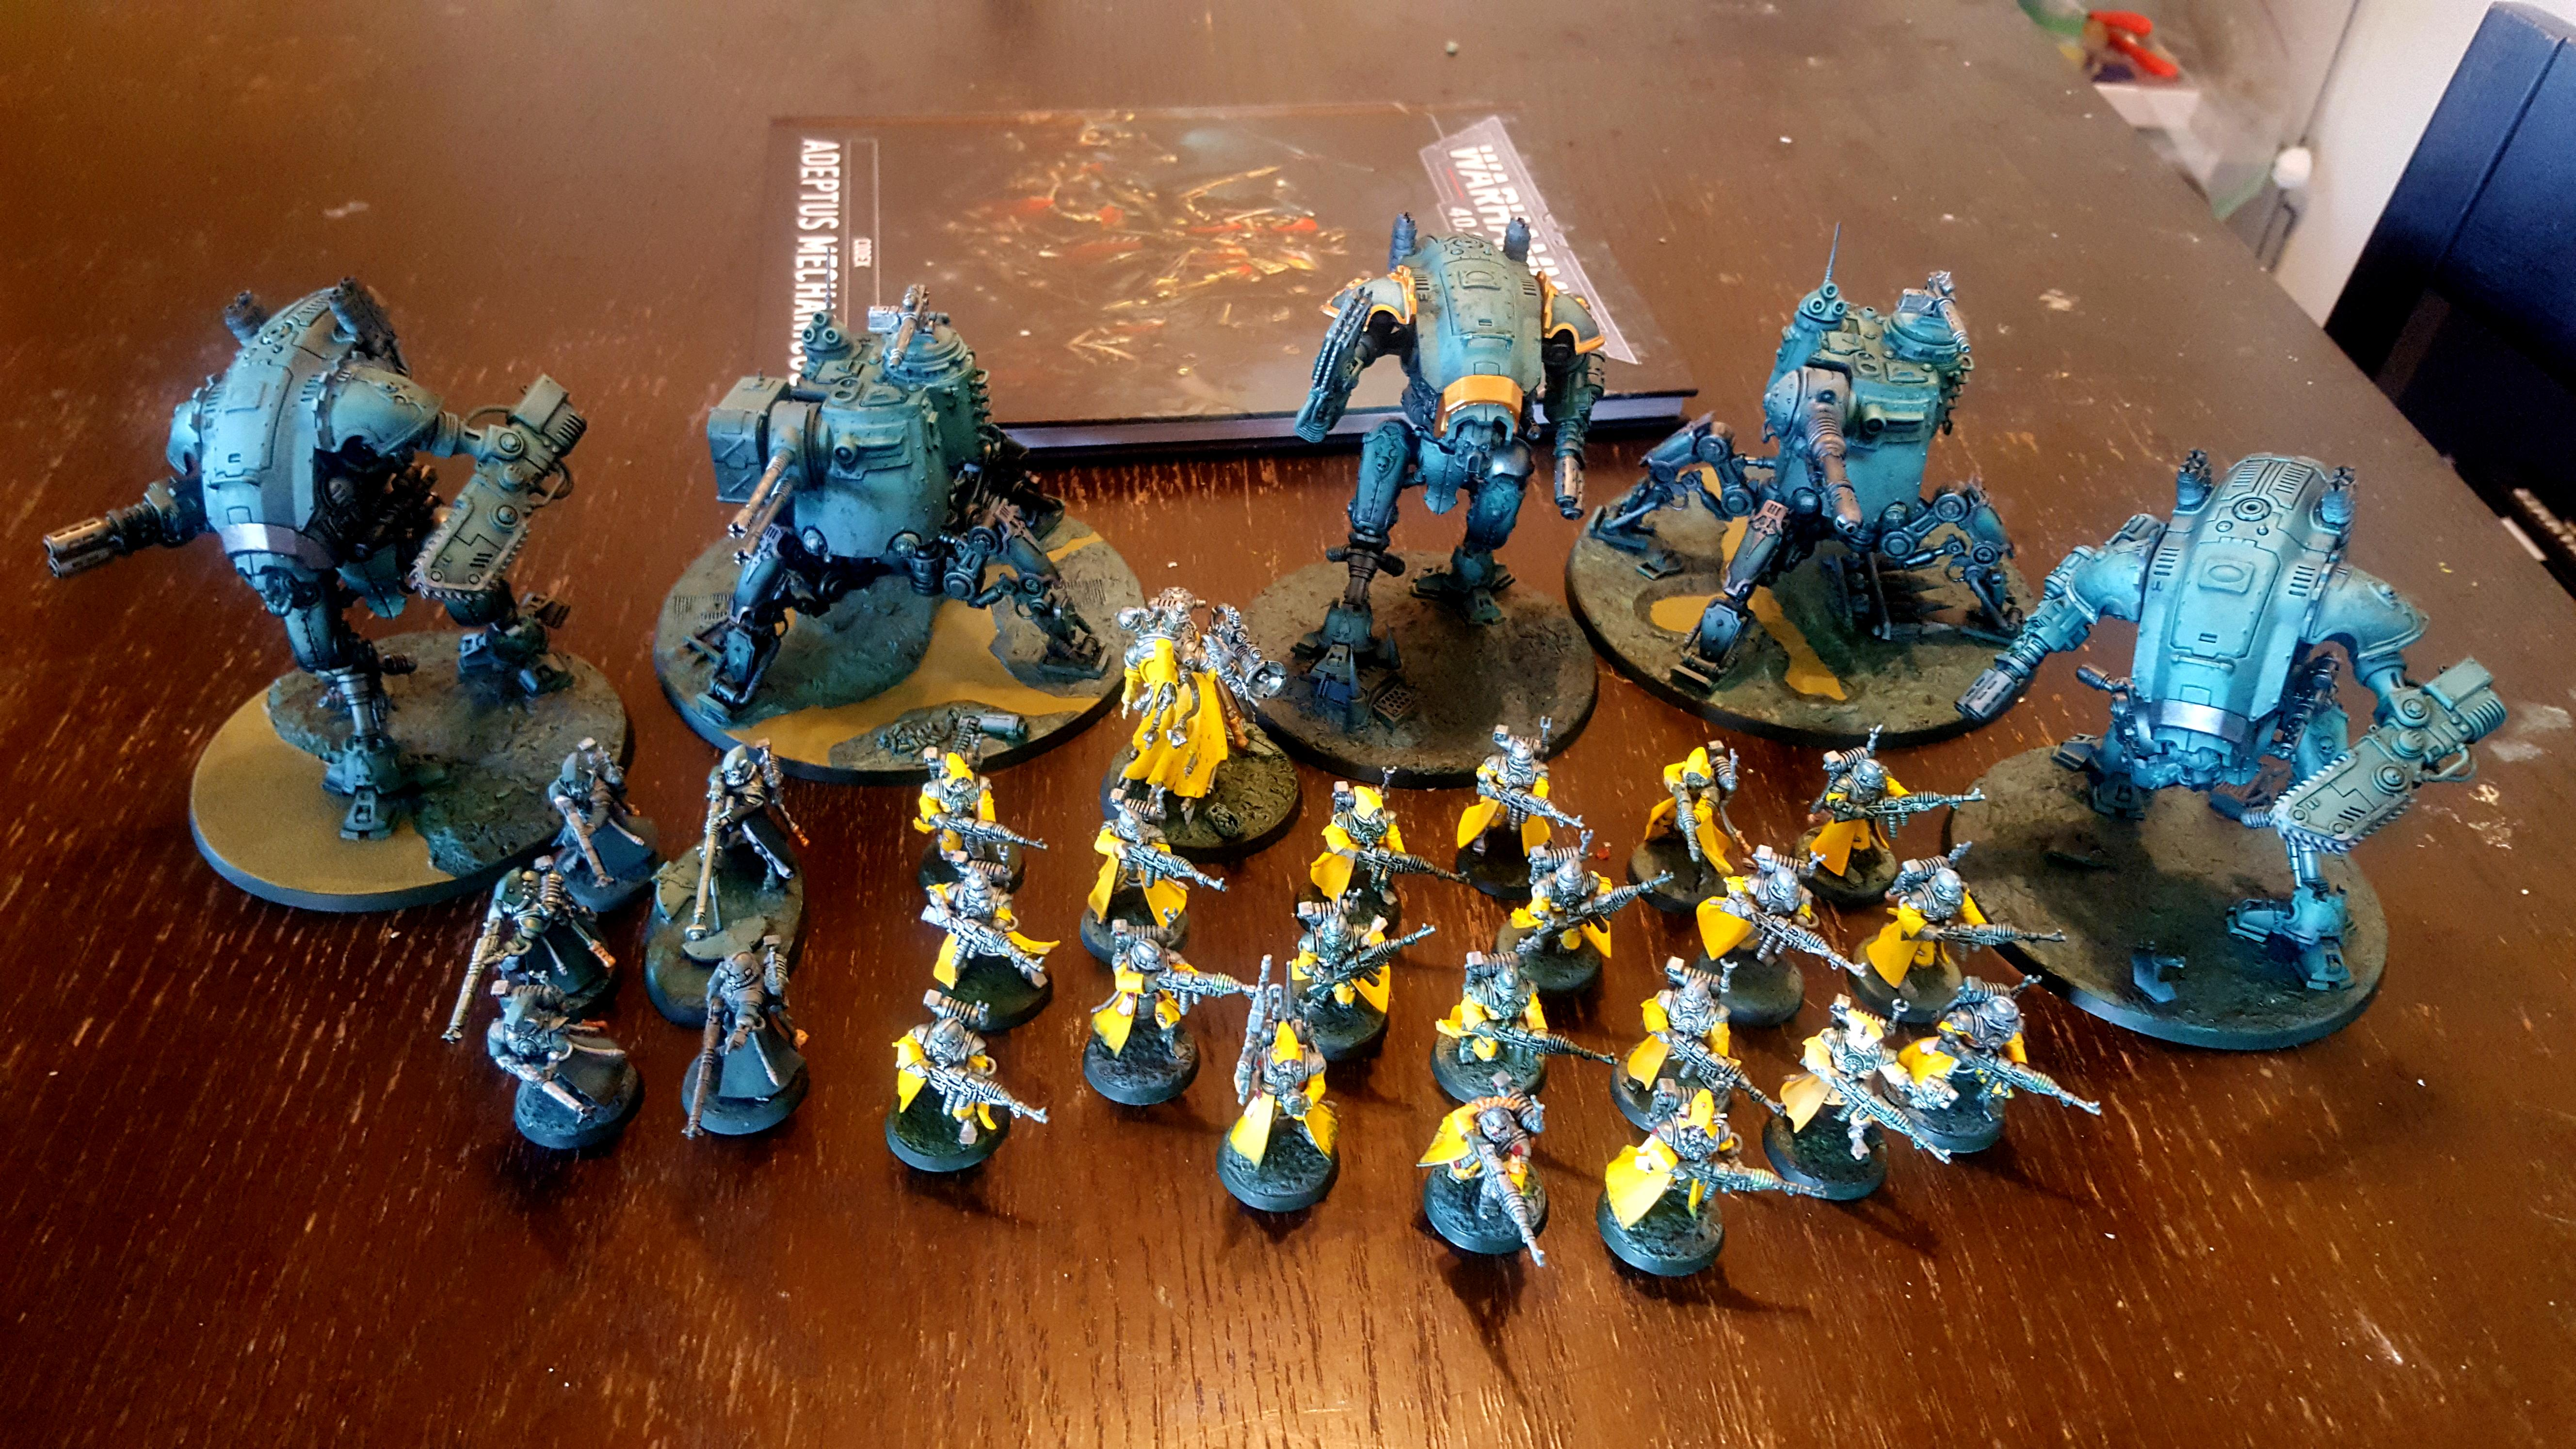 Armiger, Battle Ready, Cool, Crusade, Dynamic, Imperial Knight, Imperial Knights, Pose, Warglaive